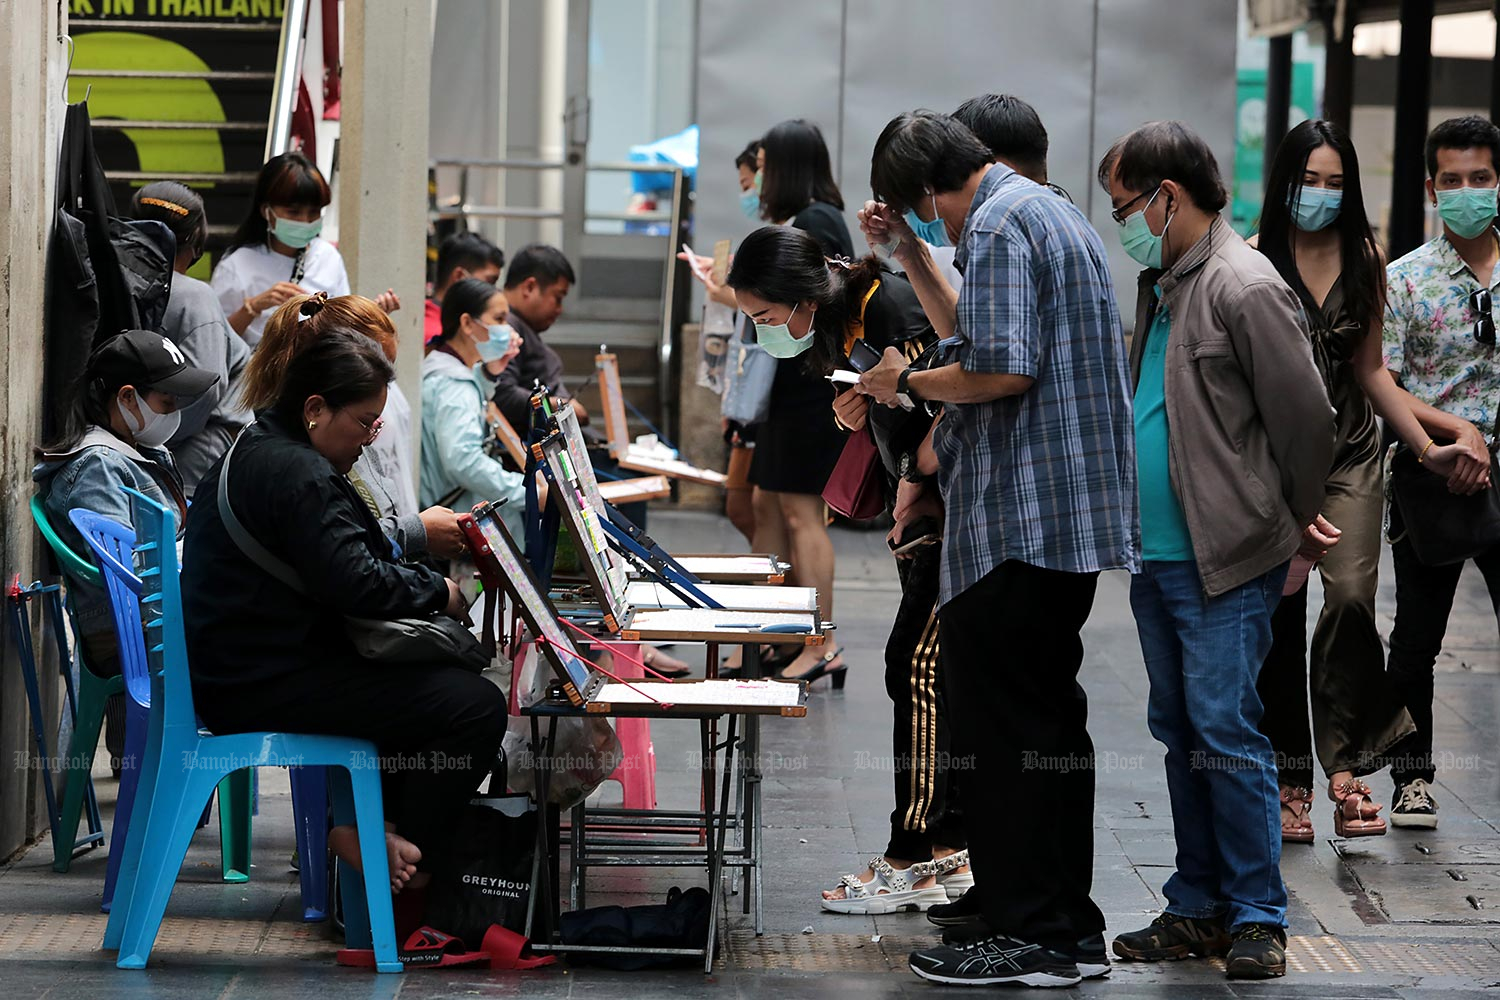 Looking for luck: People look at lottery tickets at Pathumwan intersection on Wednesday. The Government Lottery Office announced the Dec 30 draw will go ahead as usual despite the resurgence of Covid-19 in many provinces, including Bangkok. (Photo by Chanat Katanyu)